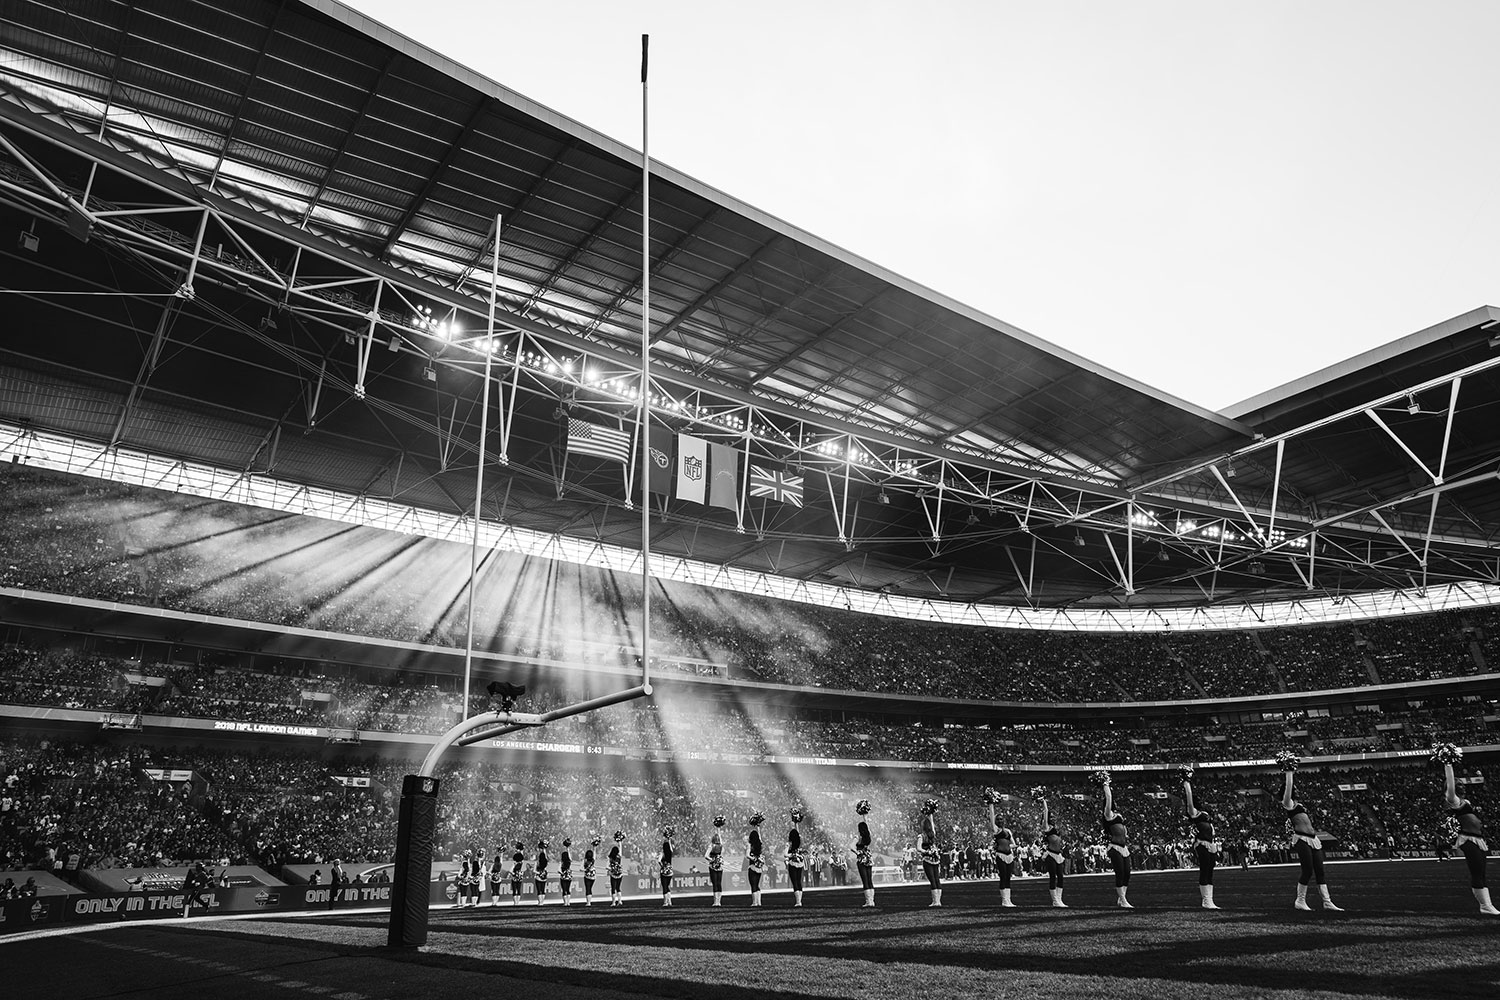 CUSTOMER CASE STUDY: Capturing the atmosphere at the 2018 NFL